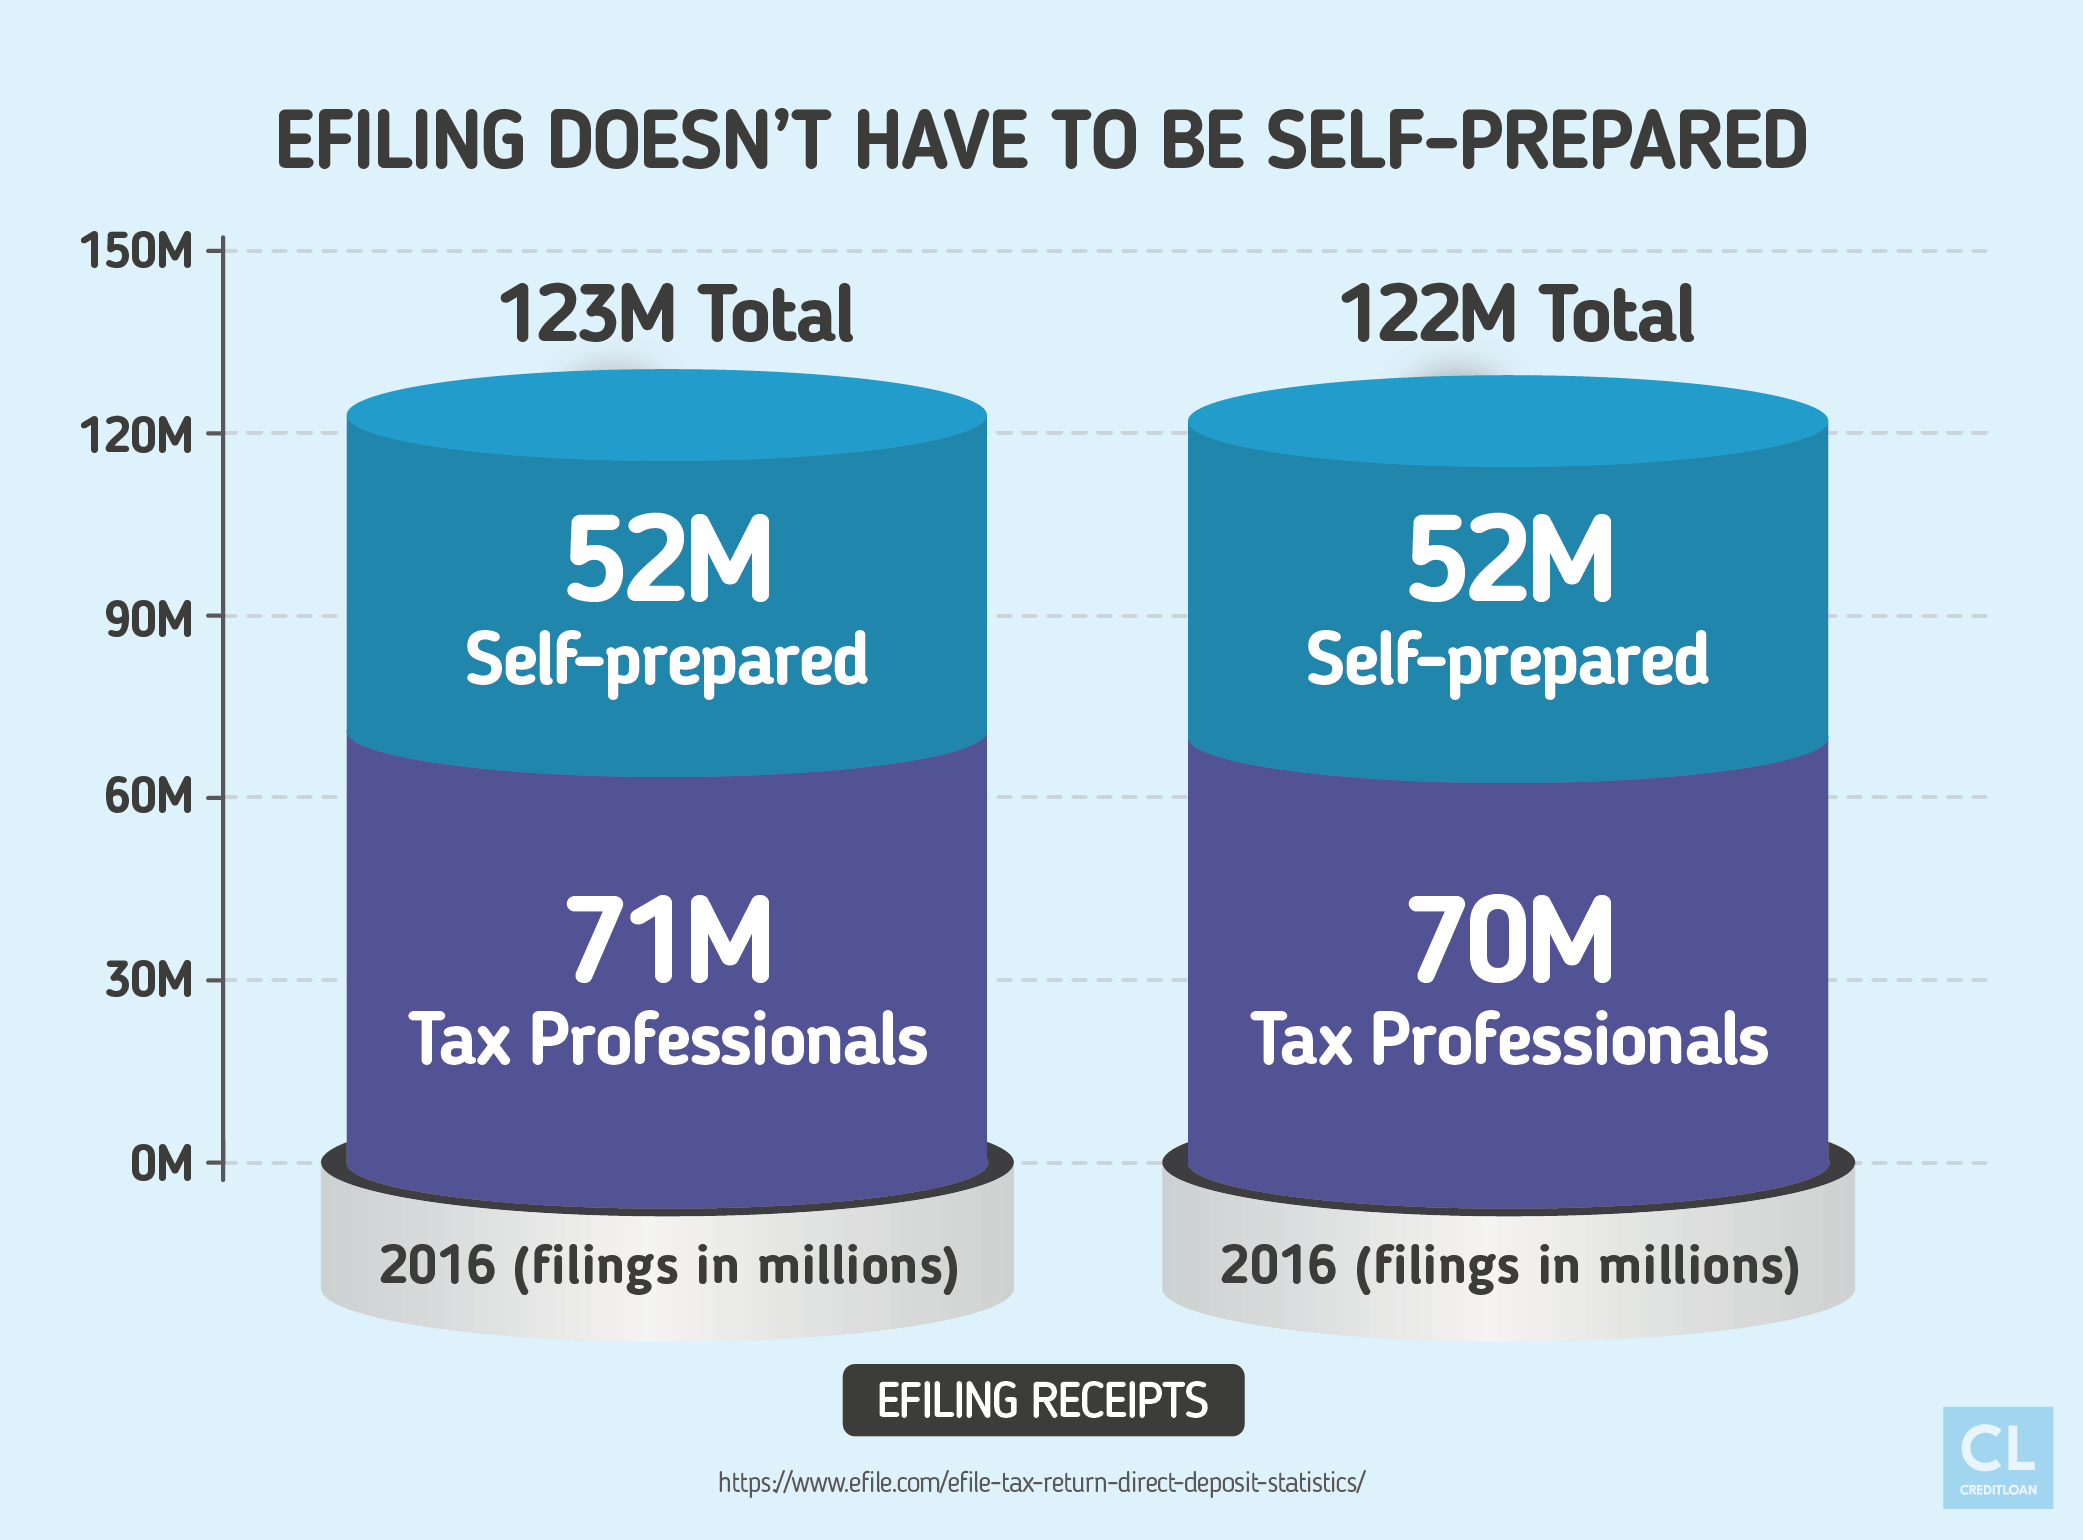 Efiling Doesn't Have to be Self-Prepared